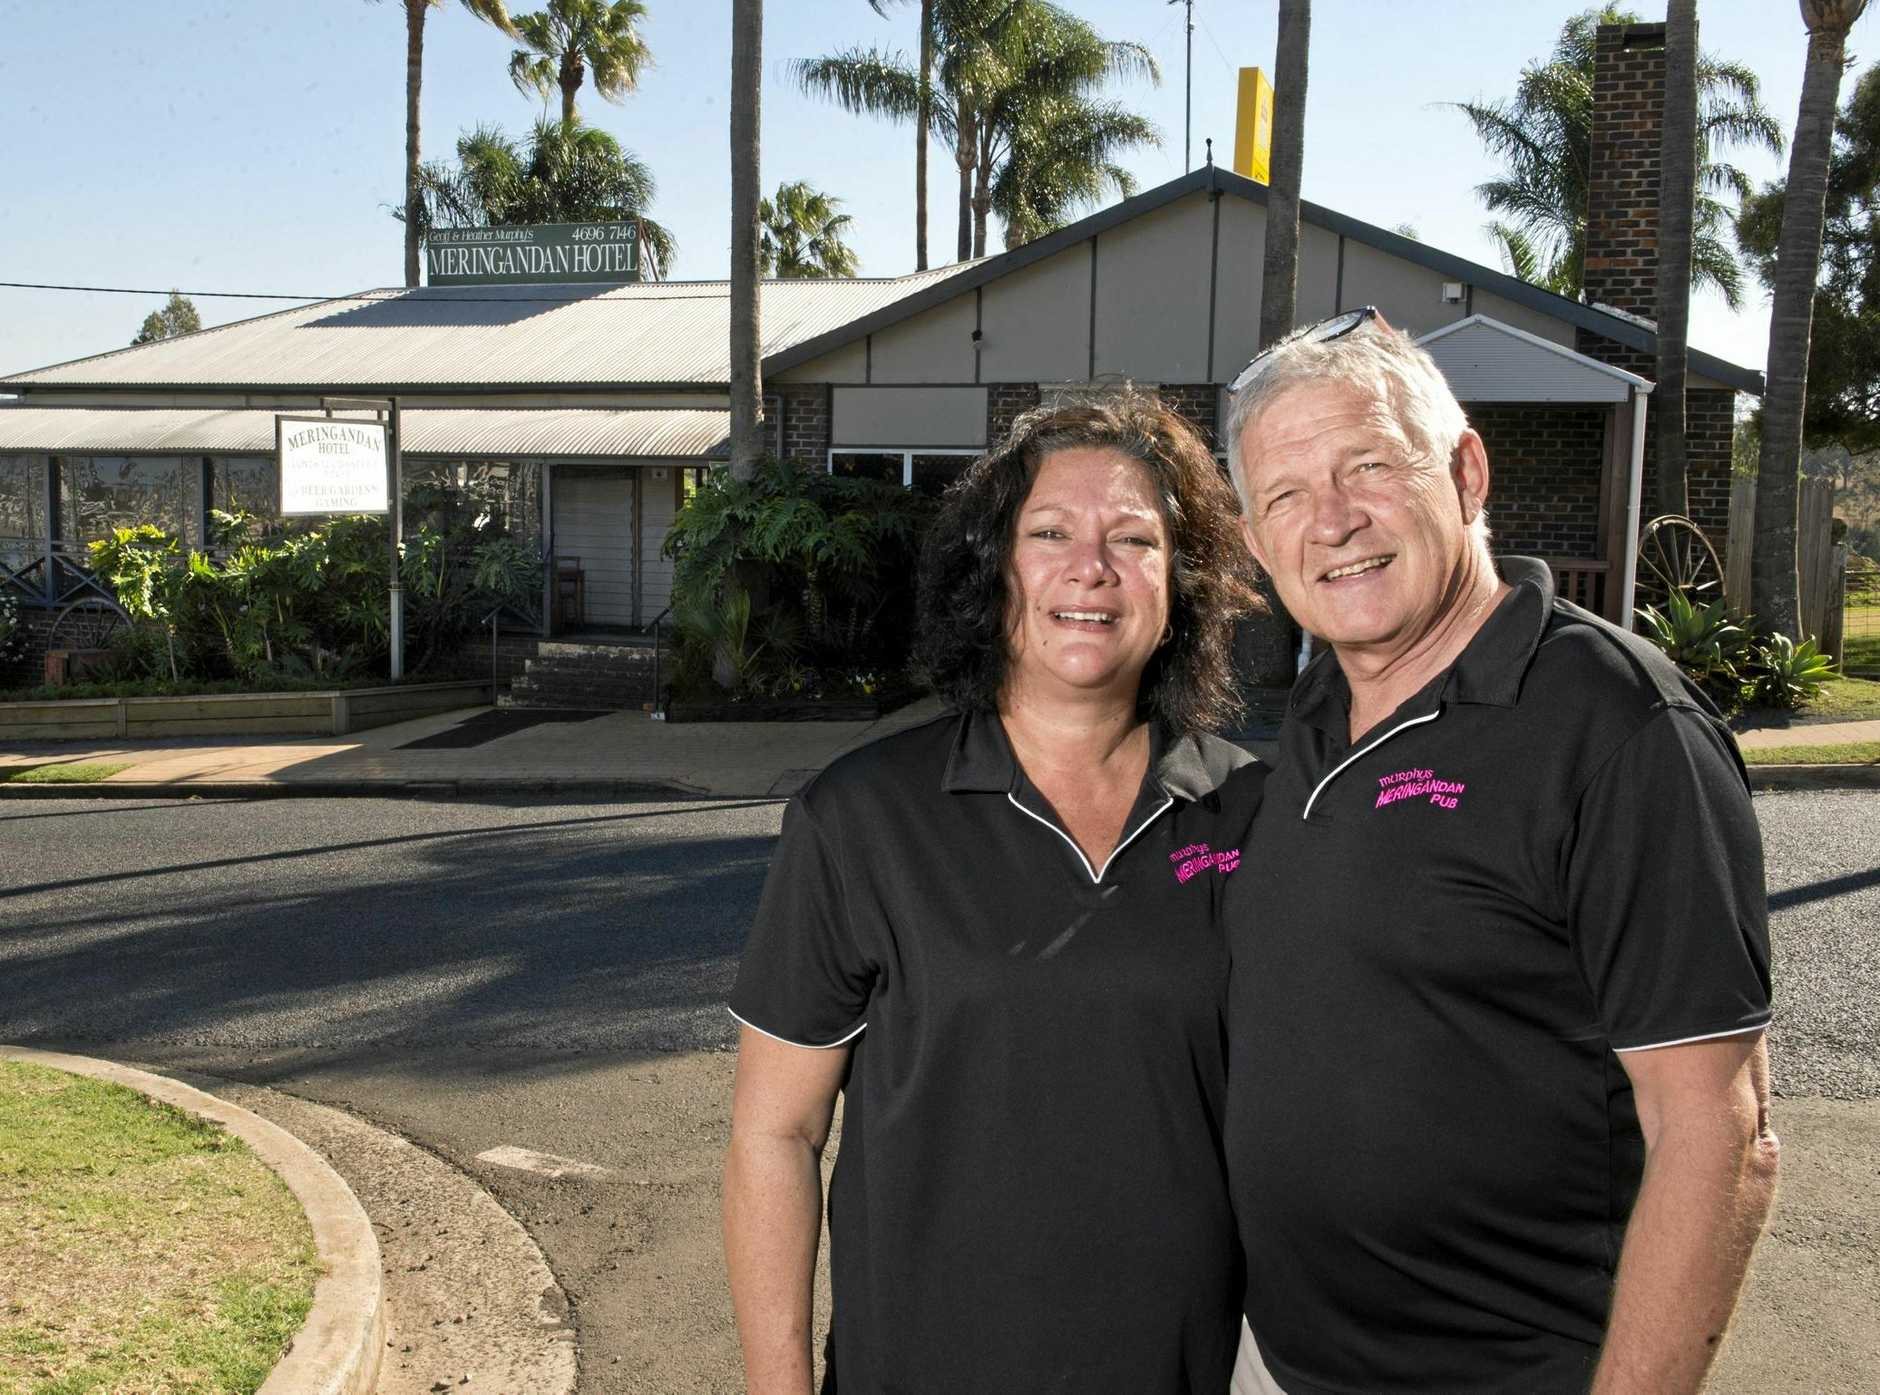 Owners Heather and Geoff Murphy outside the Meringandan Hotel.